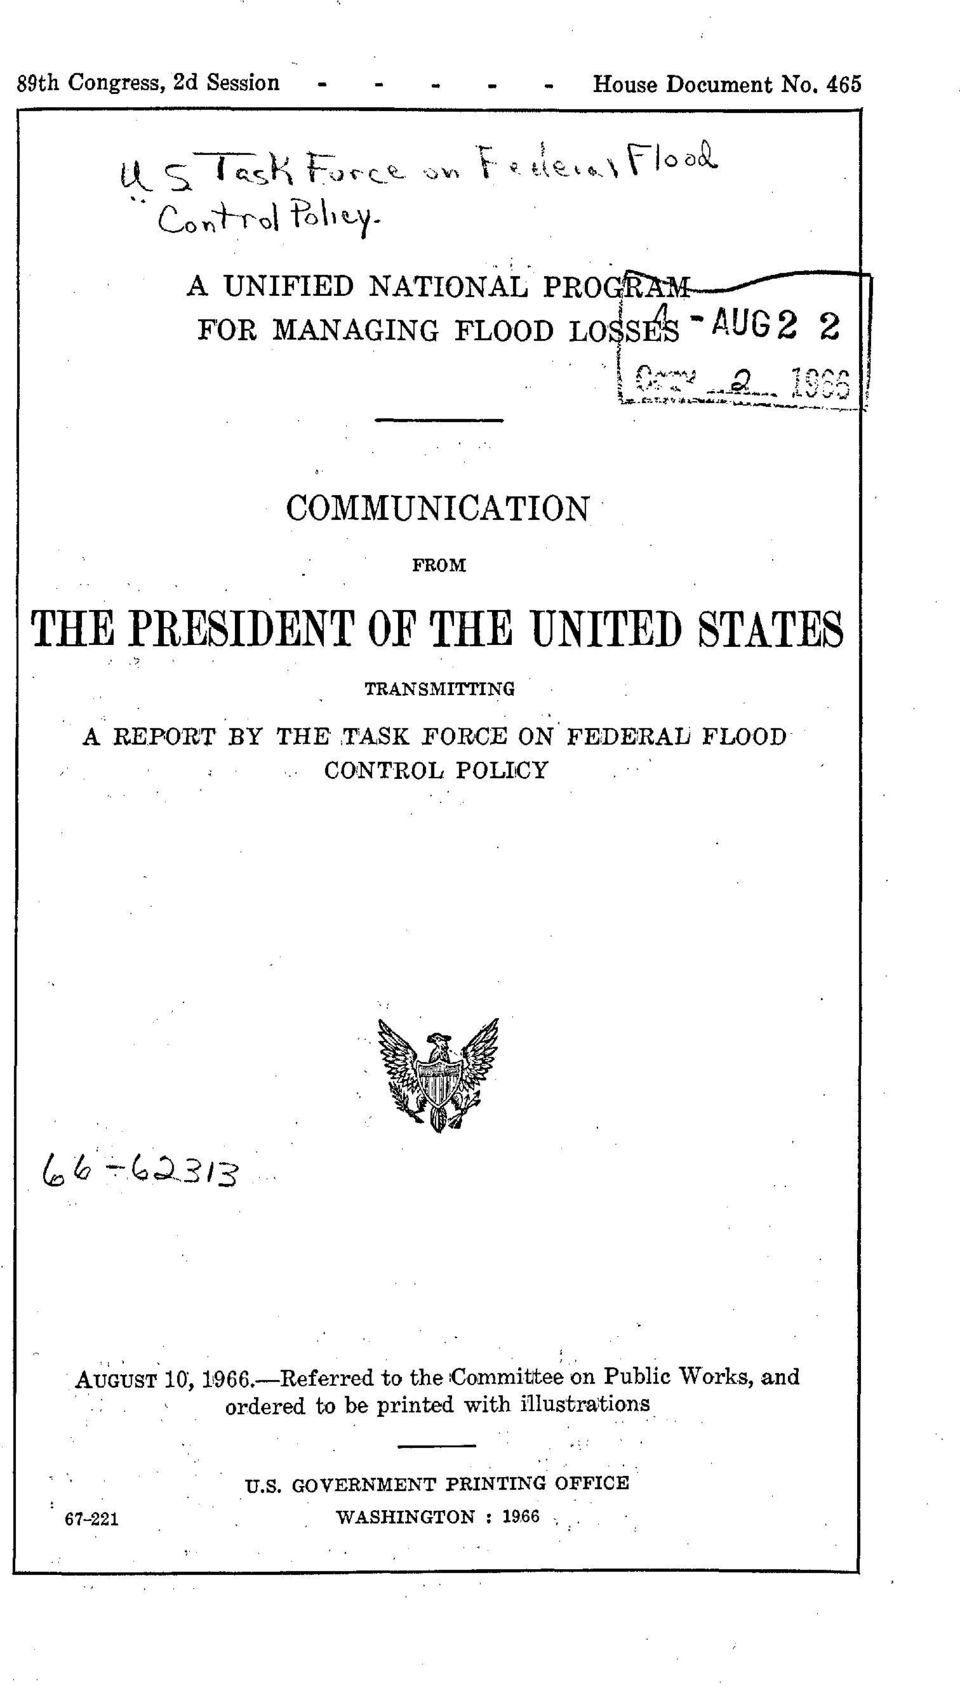 UNITED STATES TRANSMITTING A REPORT BY THE TASK FORCE ON FEDERAL FLOOD CONTROL POLICY 66-62313